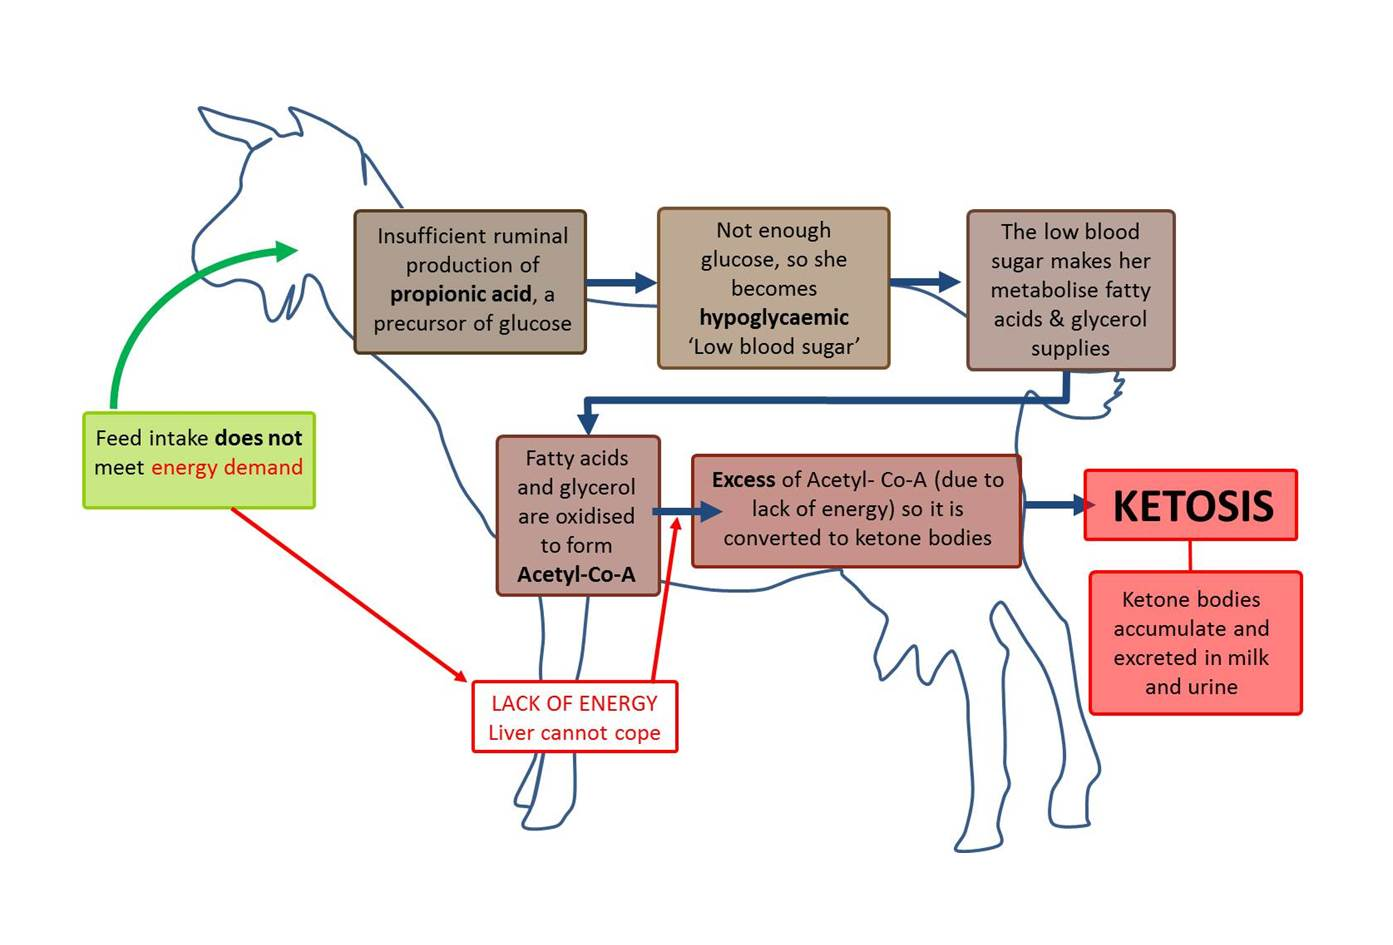 hight resolution of negative energy balance in goats